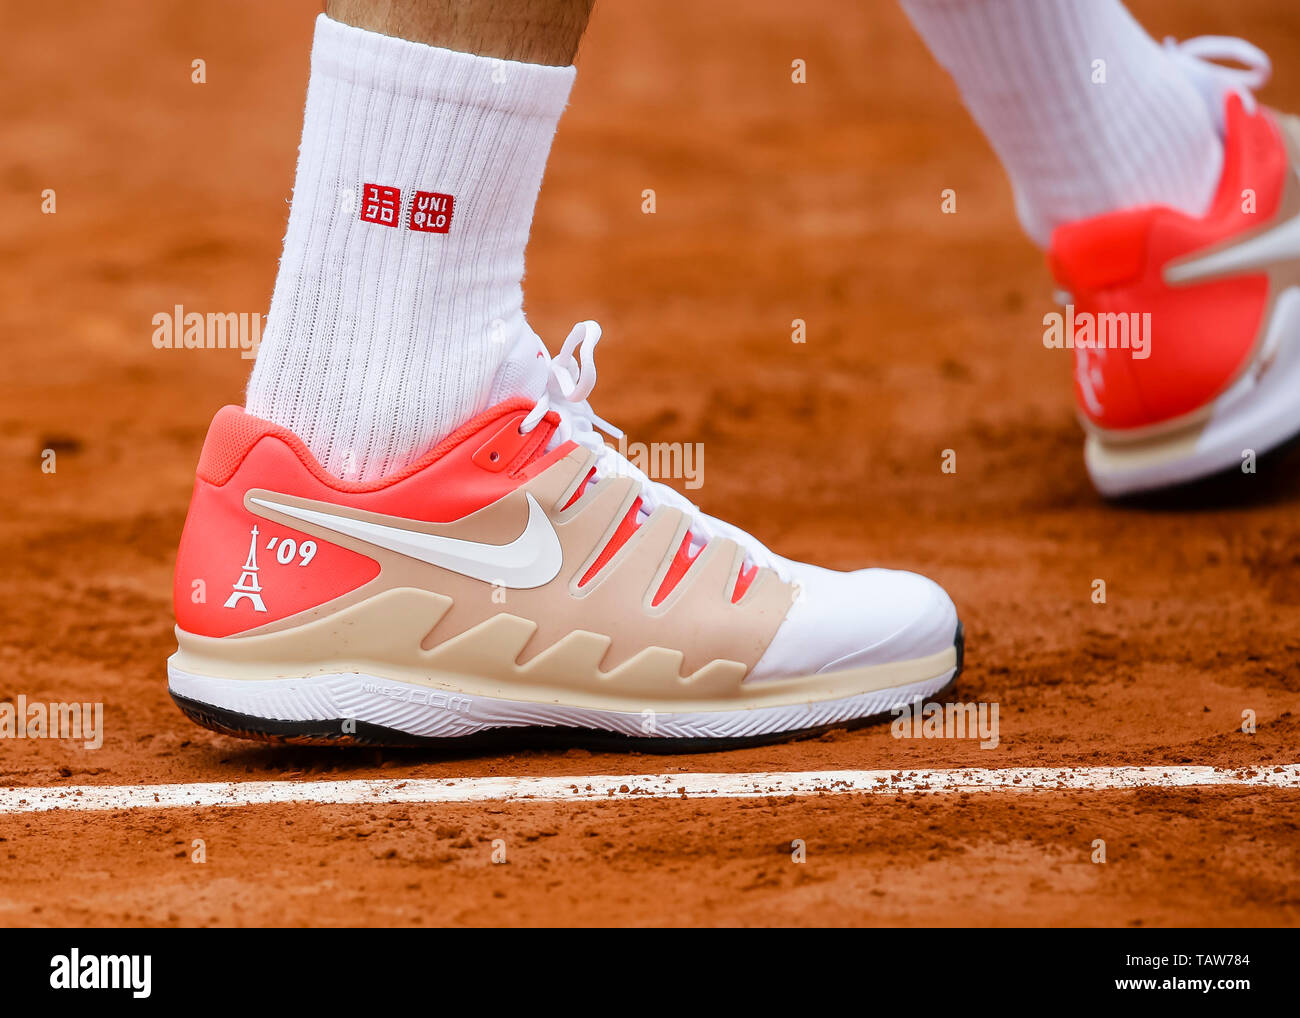 Alamy Federers Stock Stock PhotosFederers Images K3lc5uJTF1